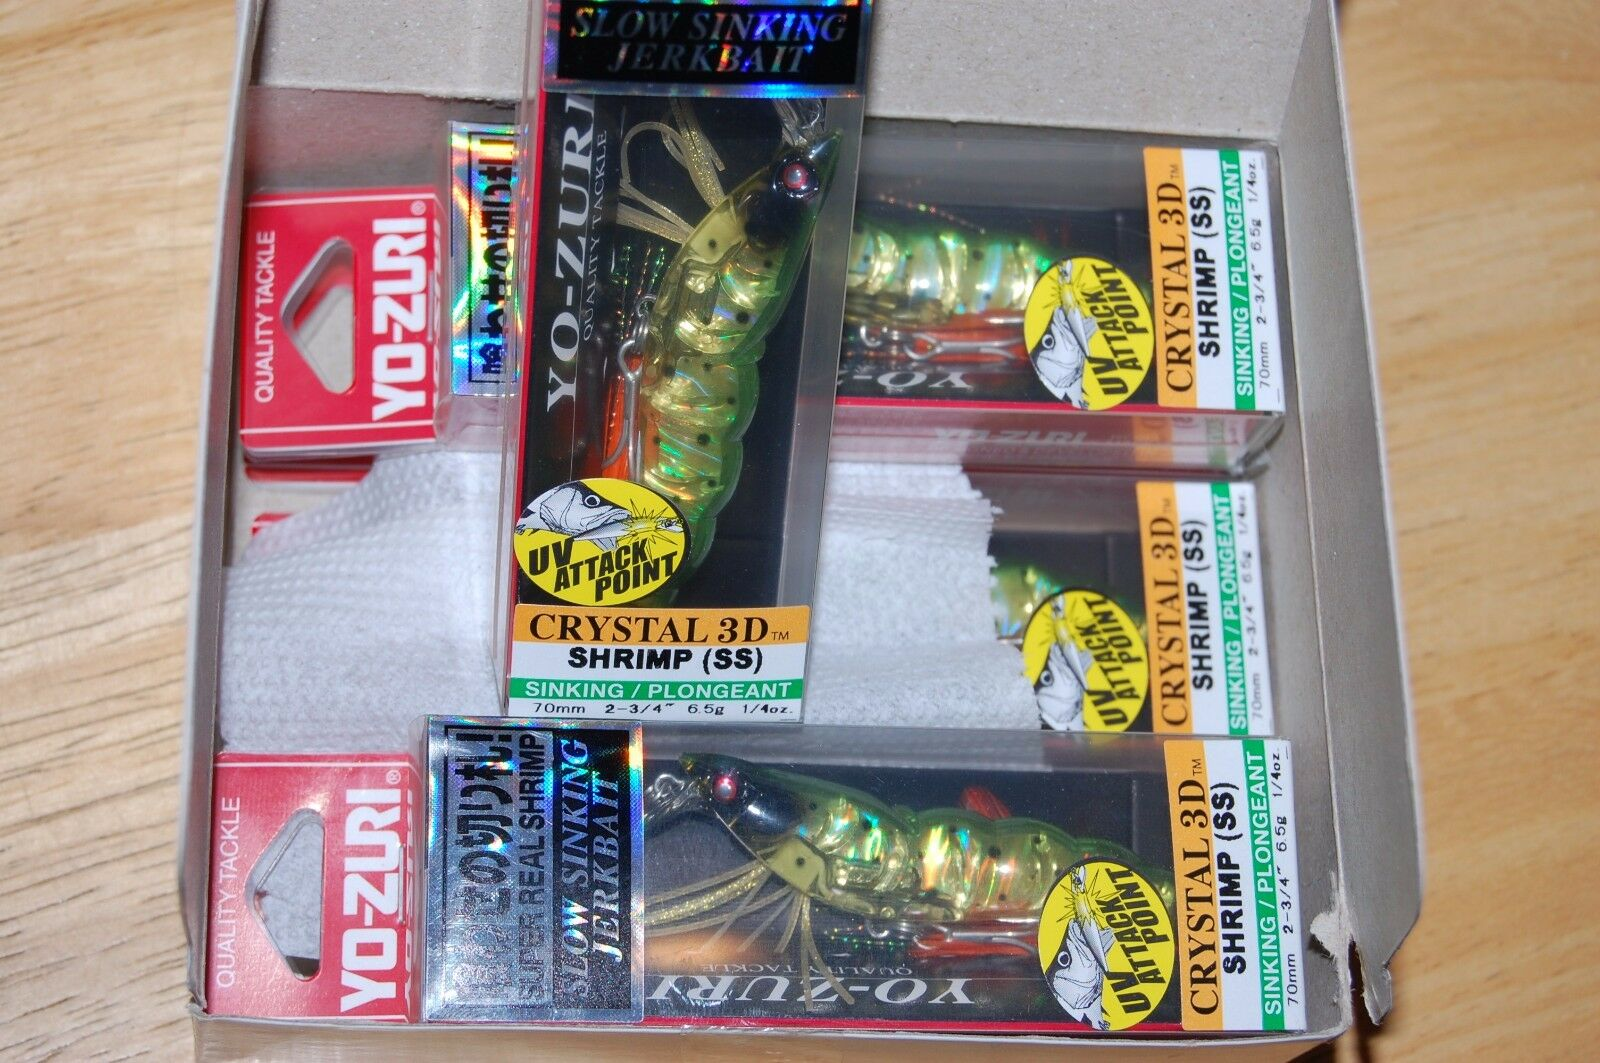 Dealer box 6 lures yo zuri shrimp crystal 3d f987-hsp 2 3 4  1 4oz holo spotted